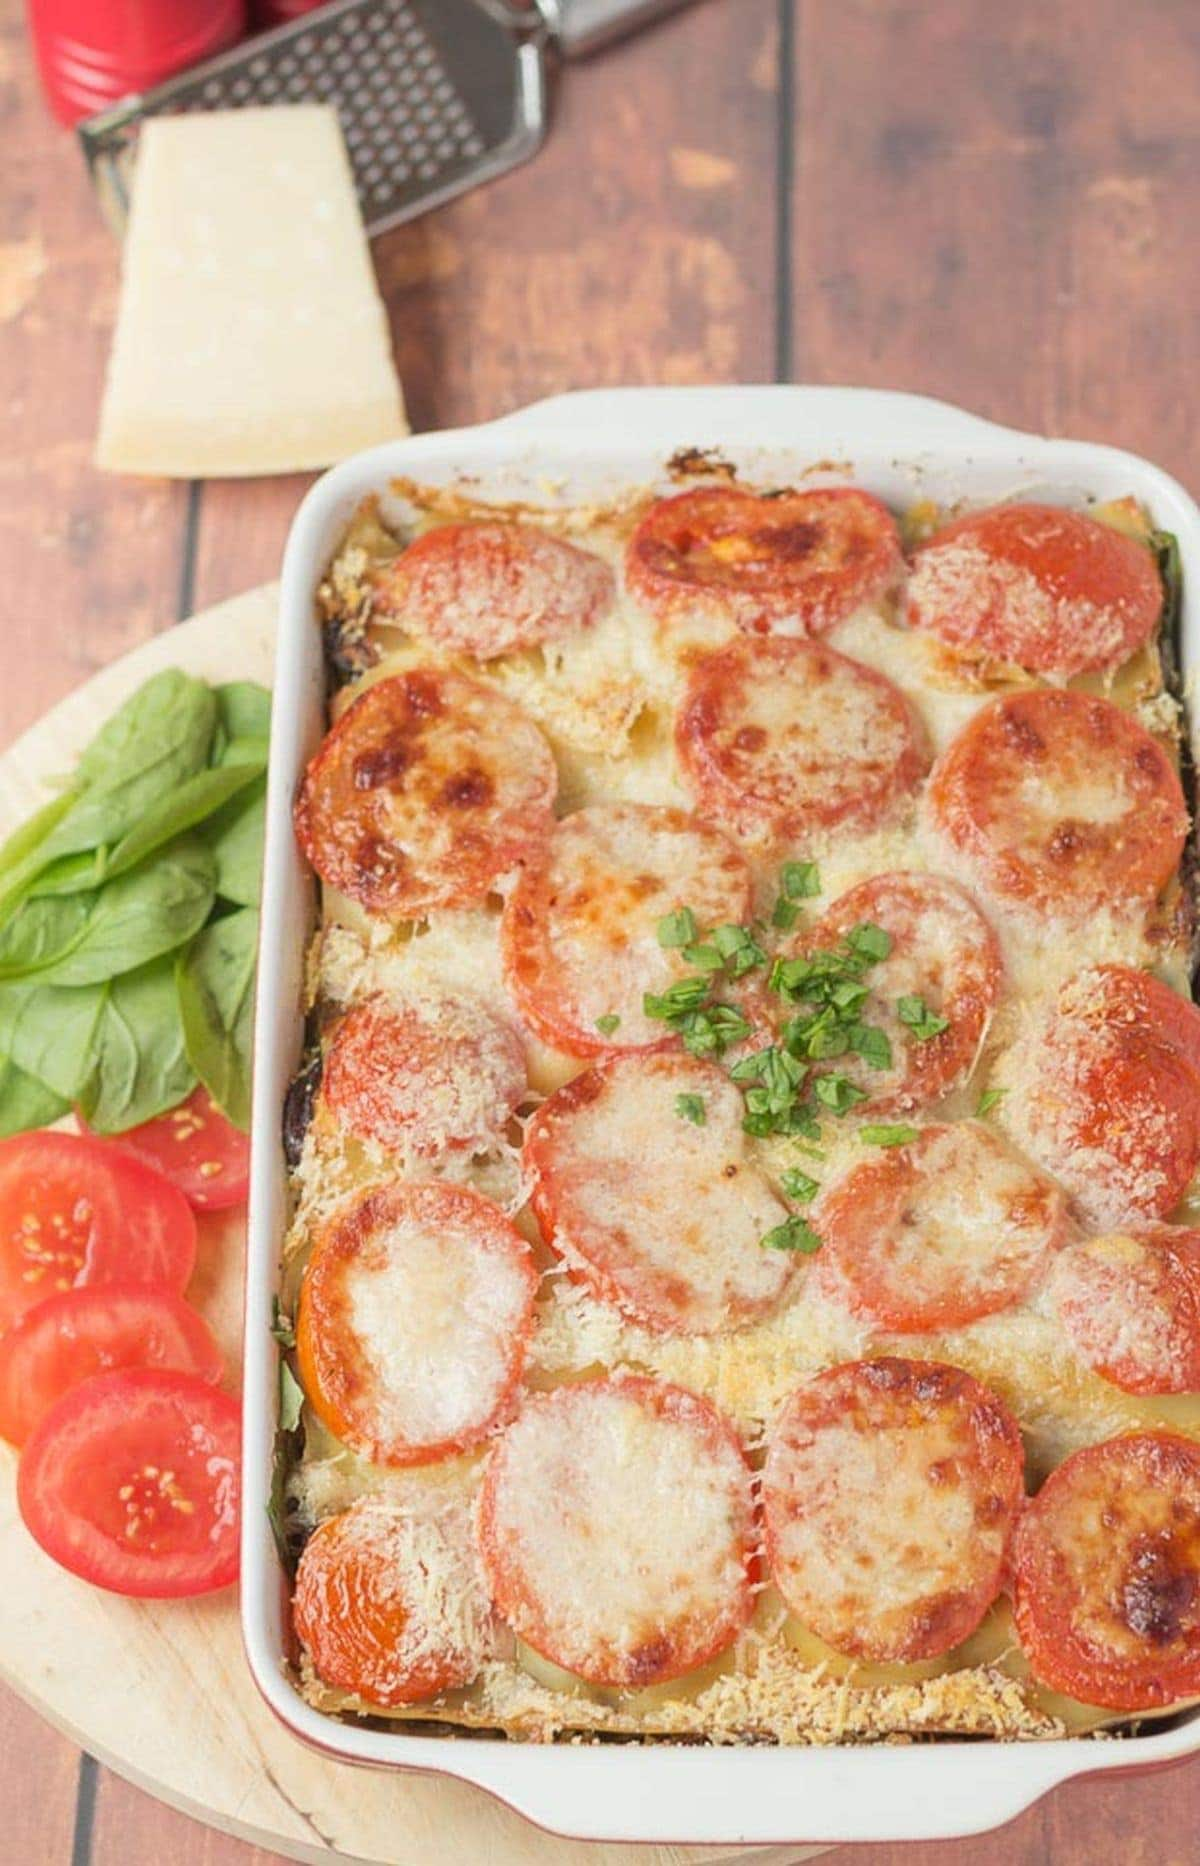 Birds eye view of a dish of vegetarian lasagne taken out of the oven and placed on a chopping board.